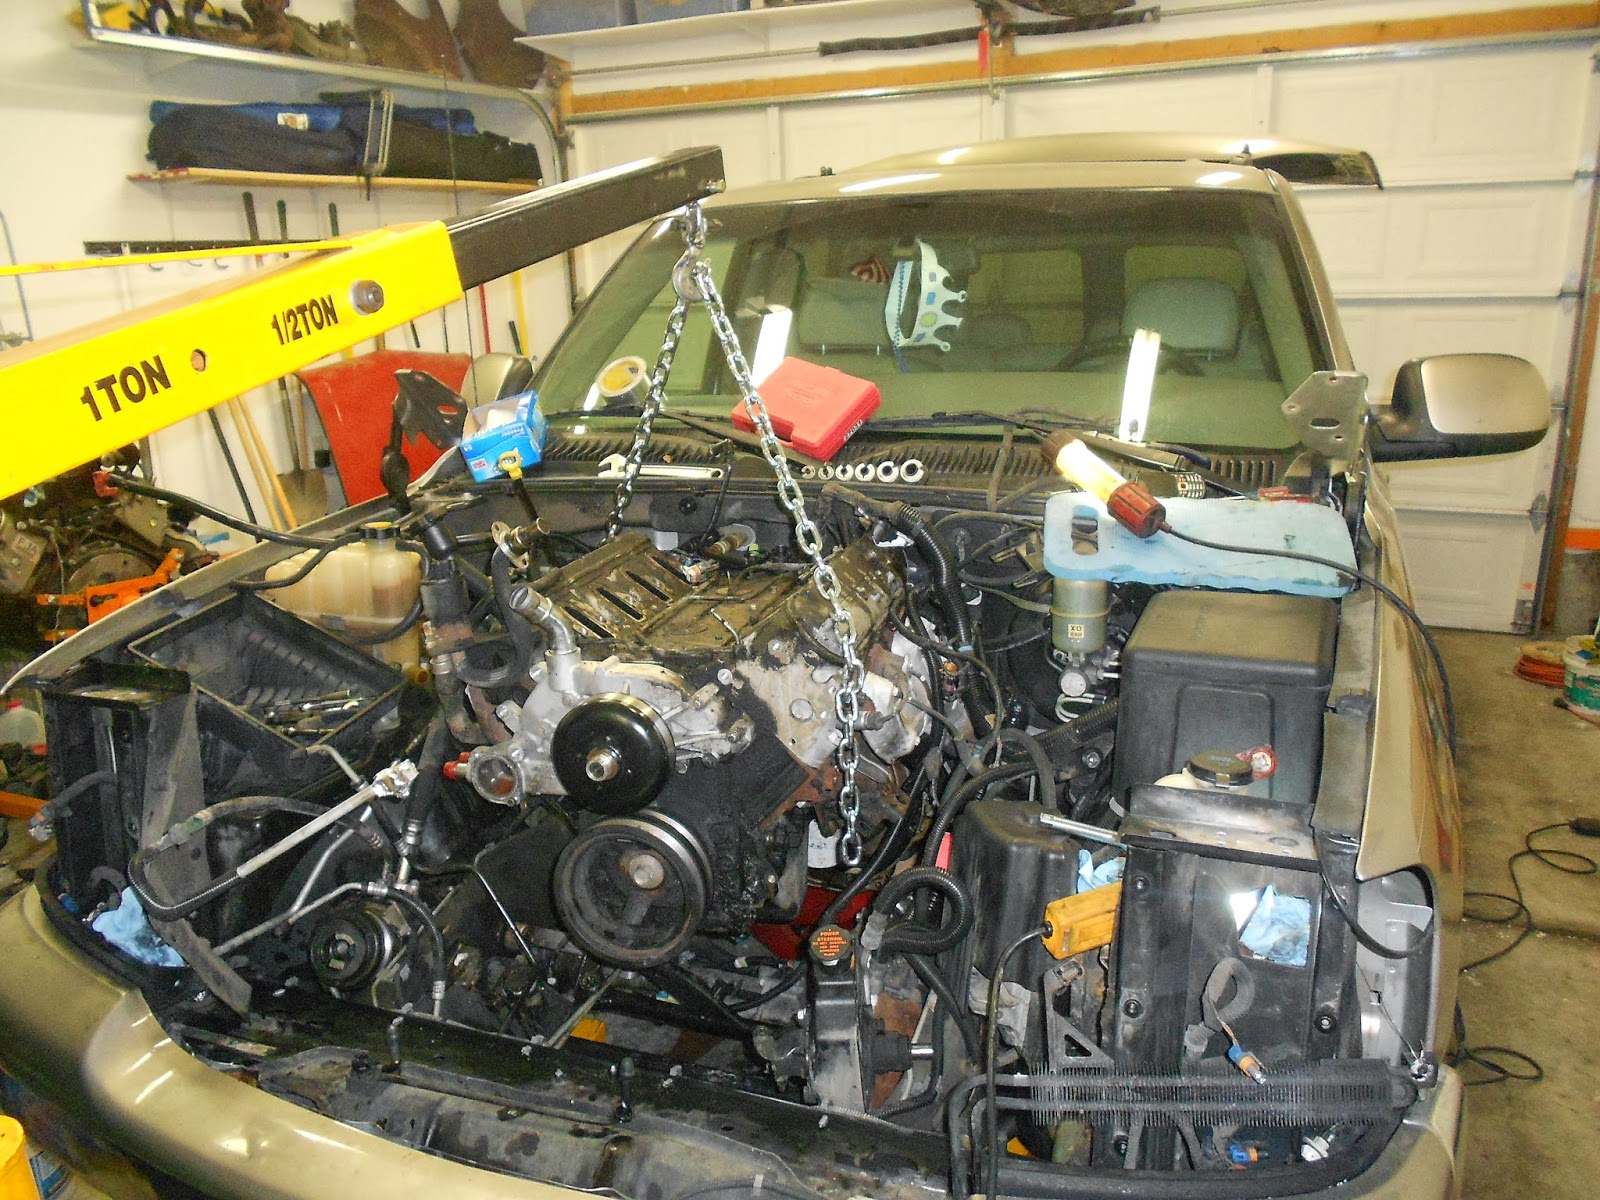 hight resolution of vw bug engine removal diagram wiring library vw engine tin diagram it was really nice being